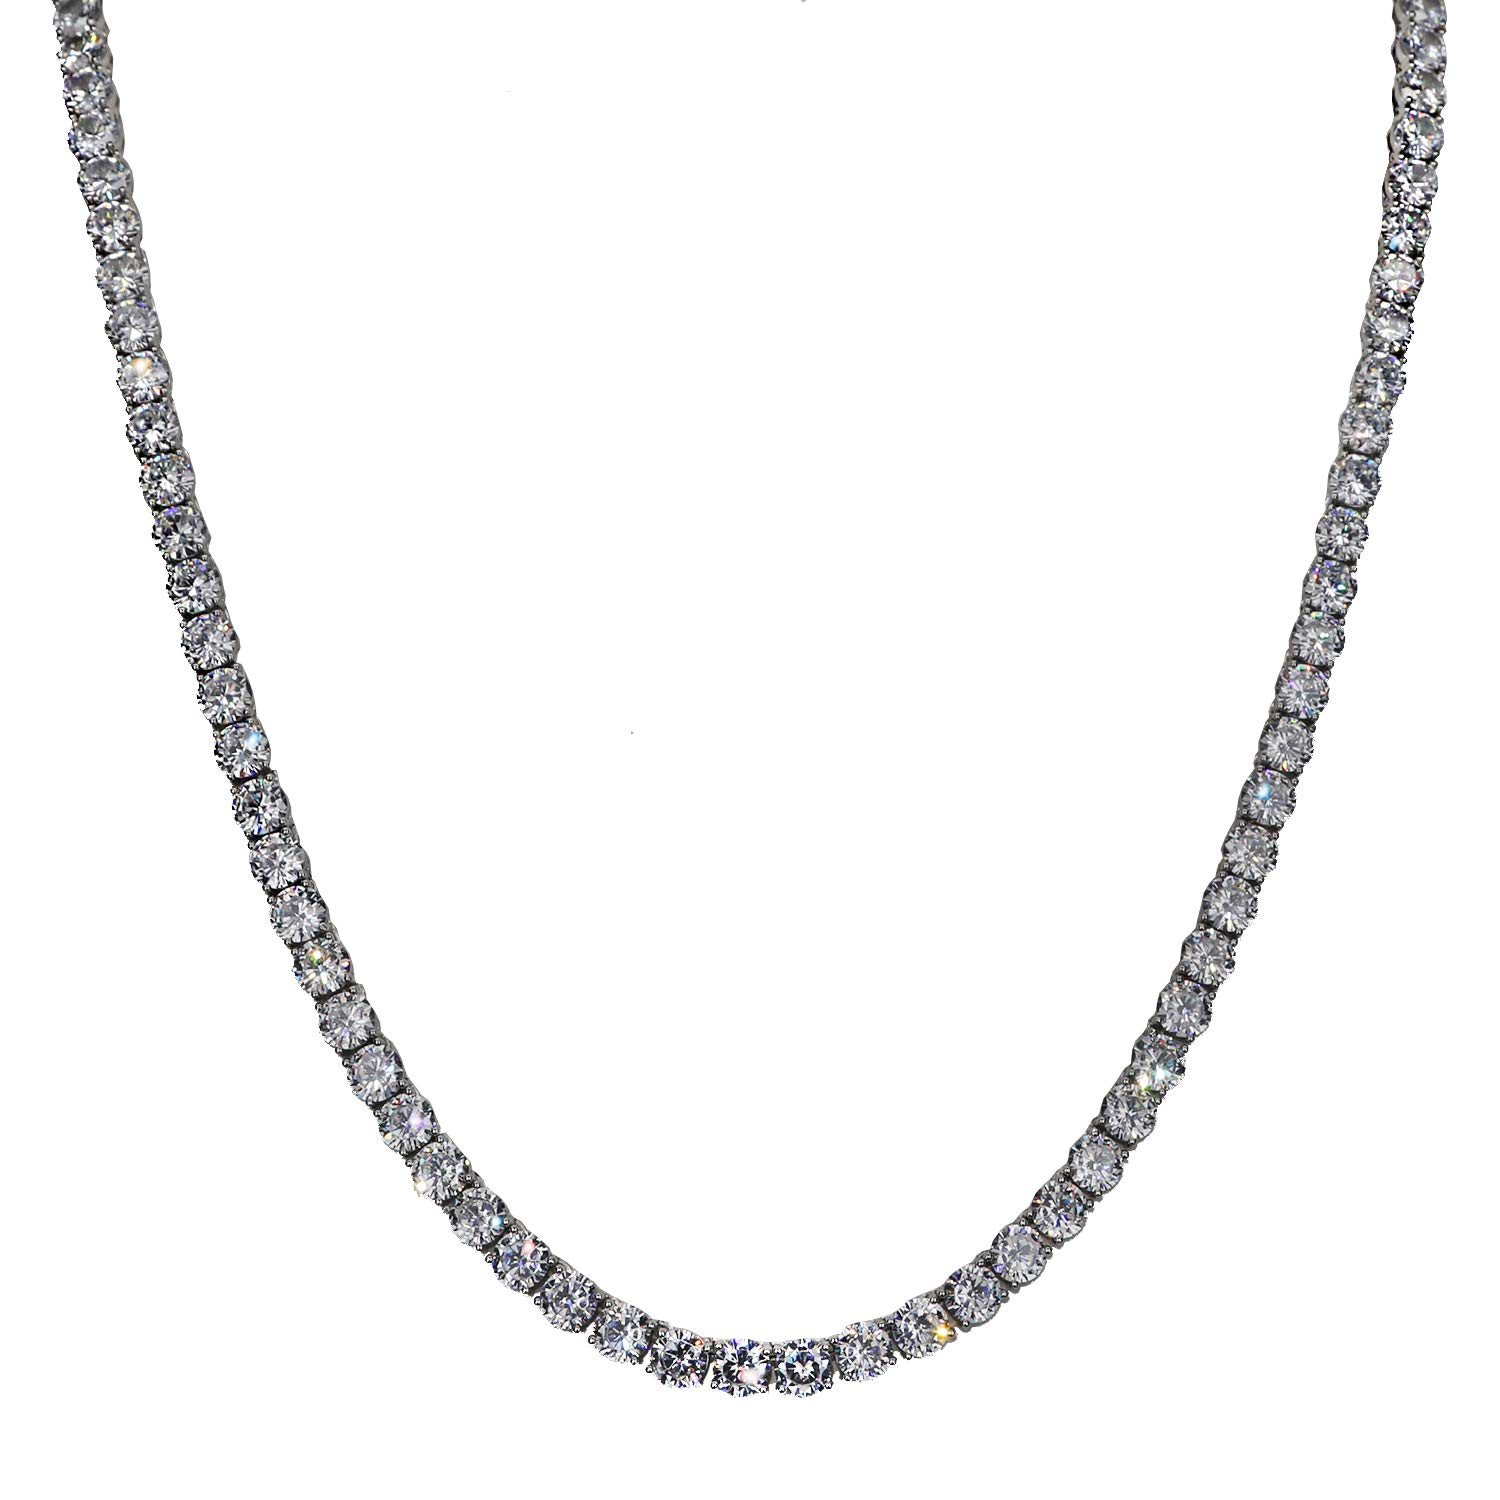 Harlembling Real Solid 925 Sterling Silver Iced Out Tennis Chain for Men 16''-30'' 7mm ICY CZ Hip Hop Rapper Style (30)